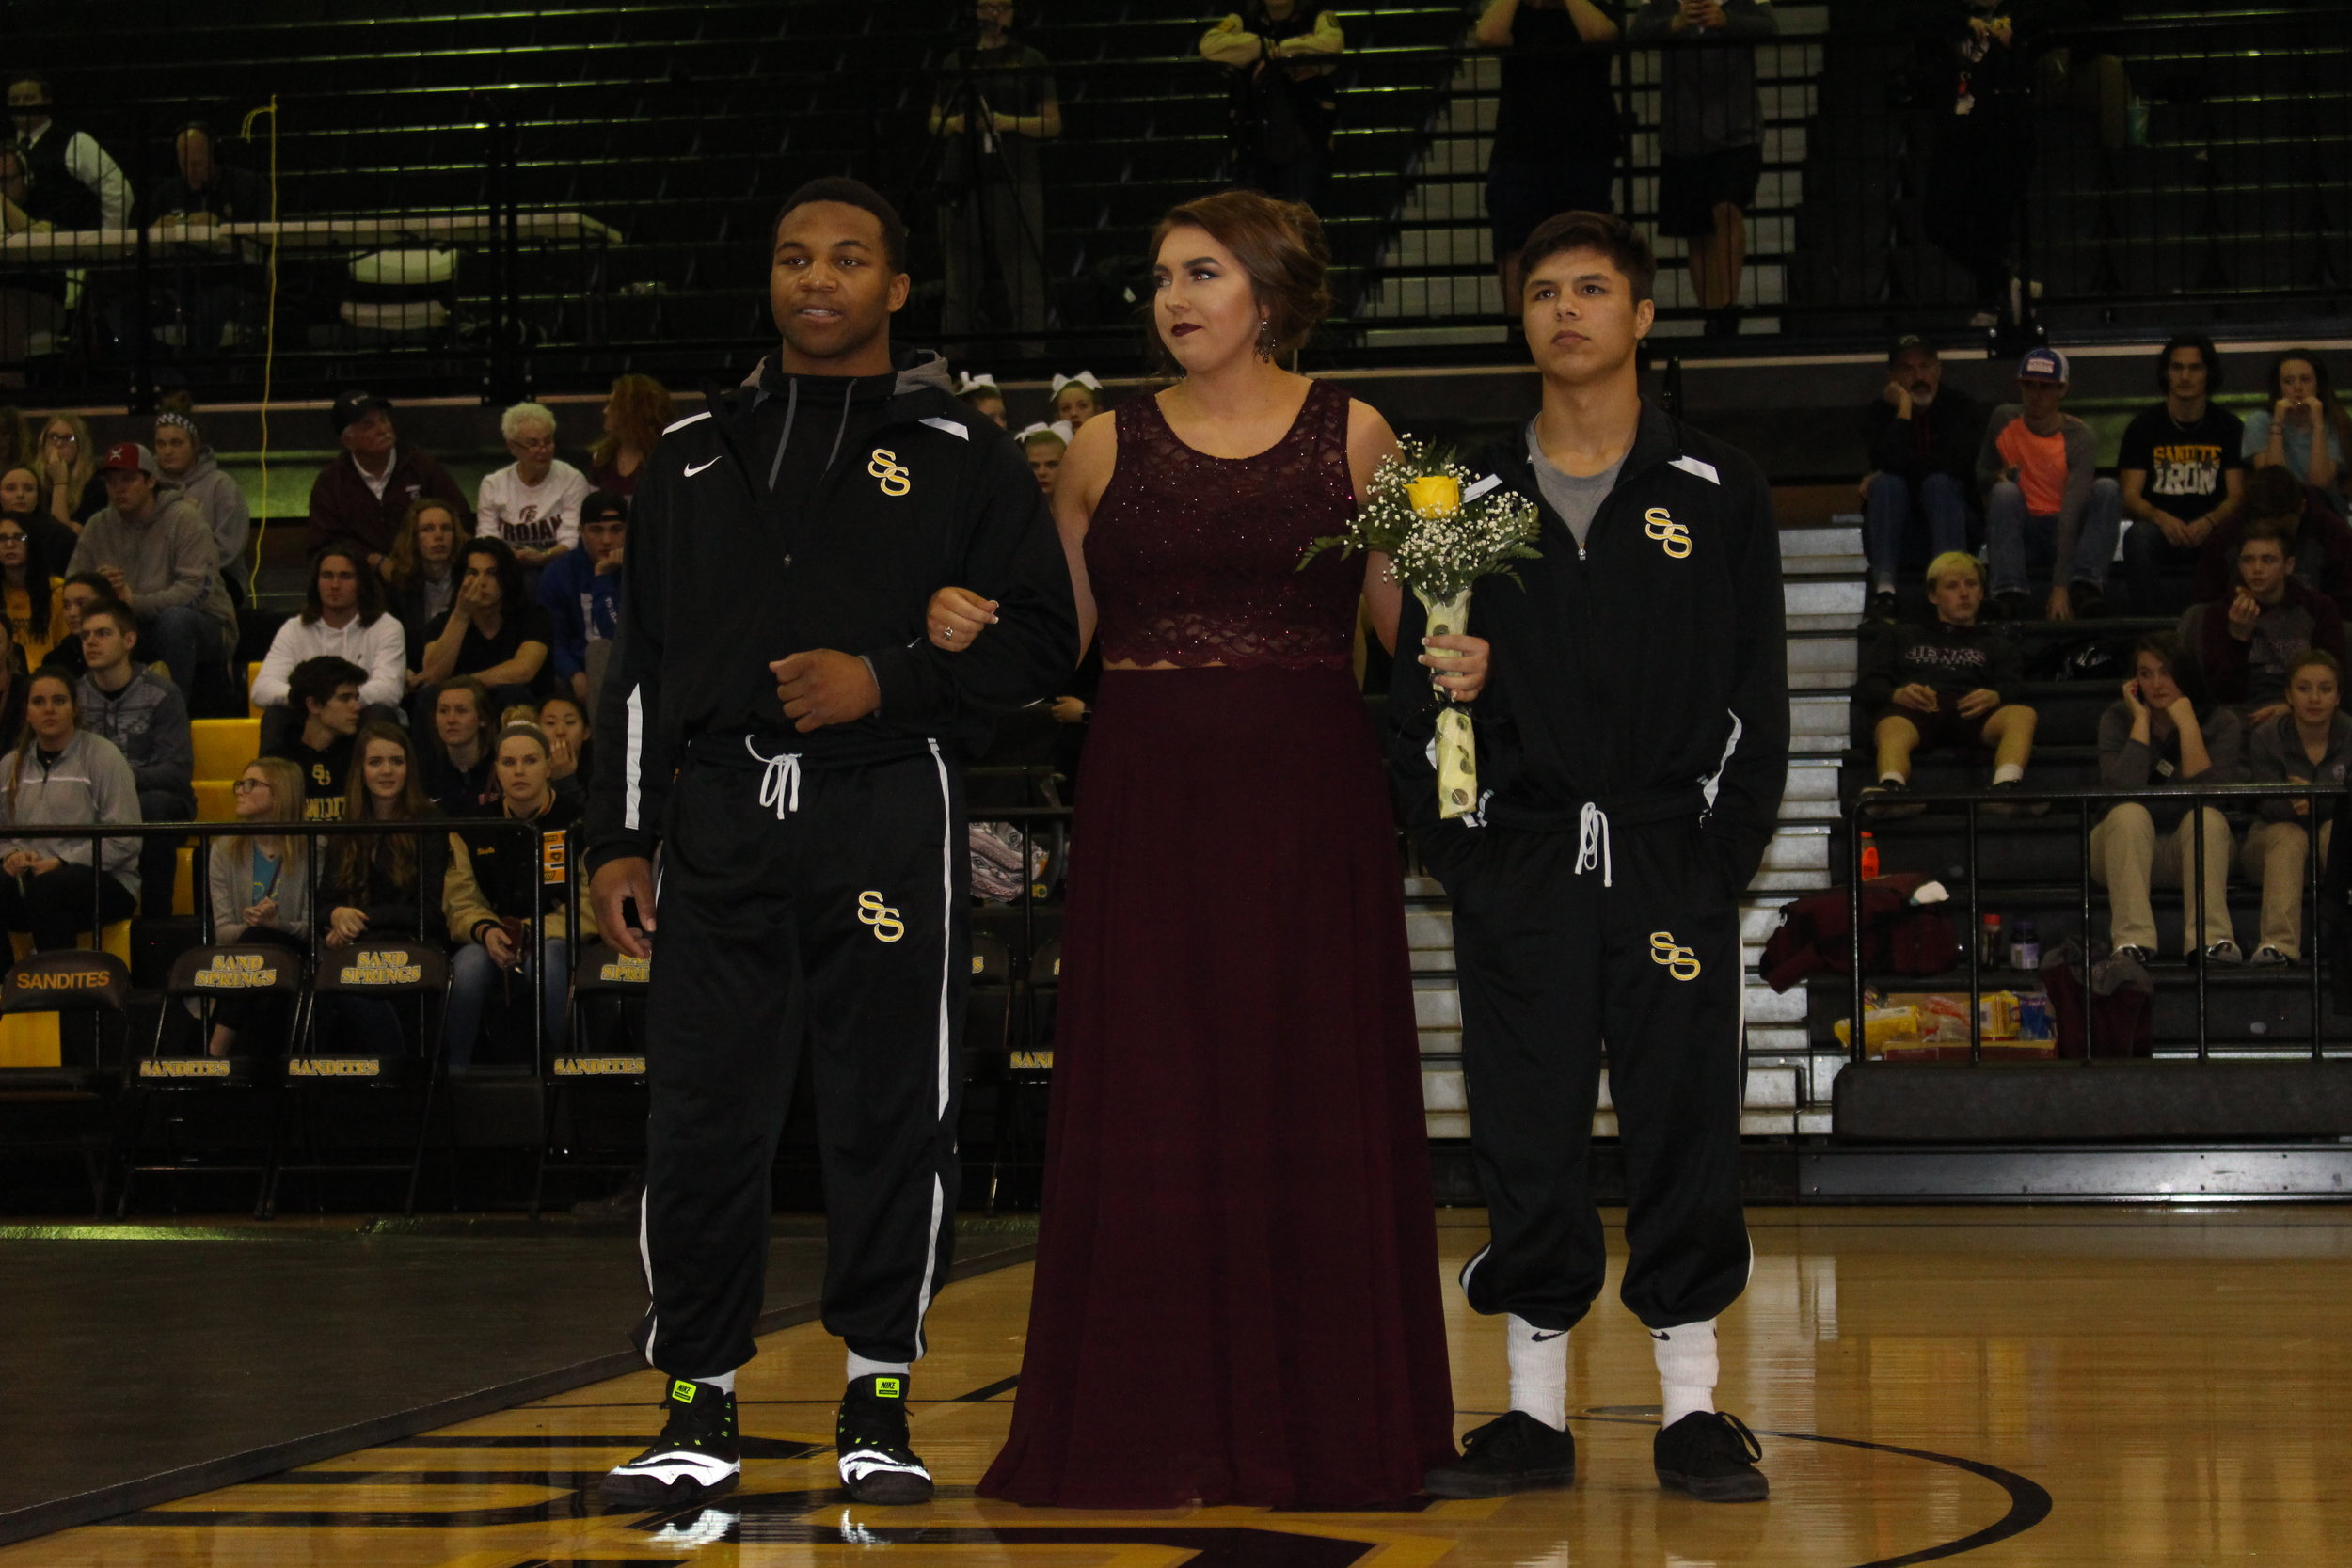 Homecoming Queen Candidate Anna Andrews, escorted by Delvin Jordan and Cody Mathis.